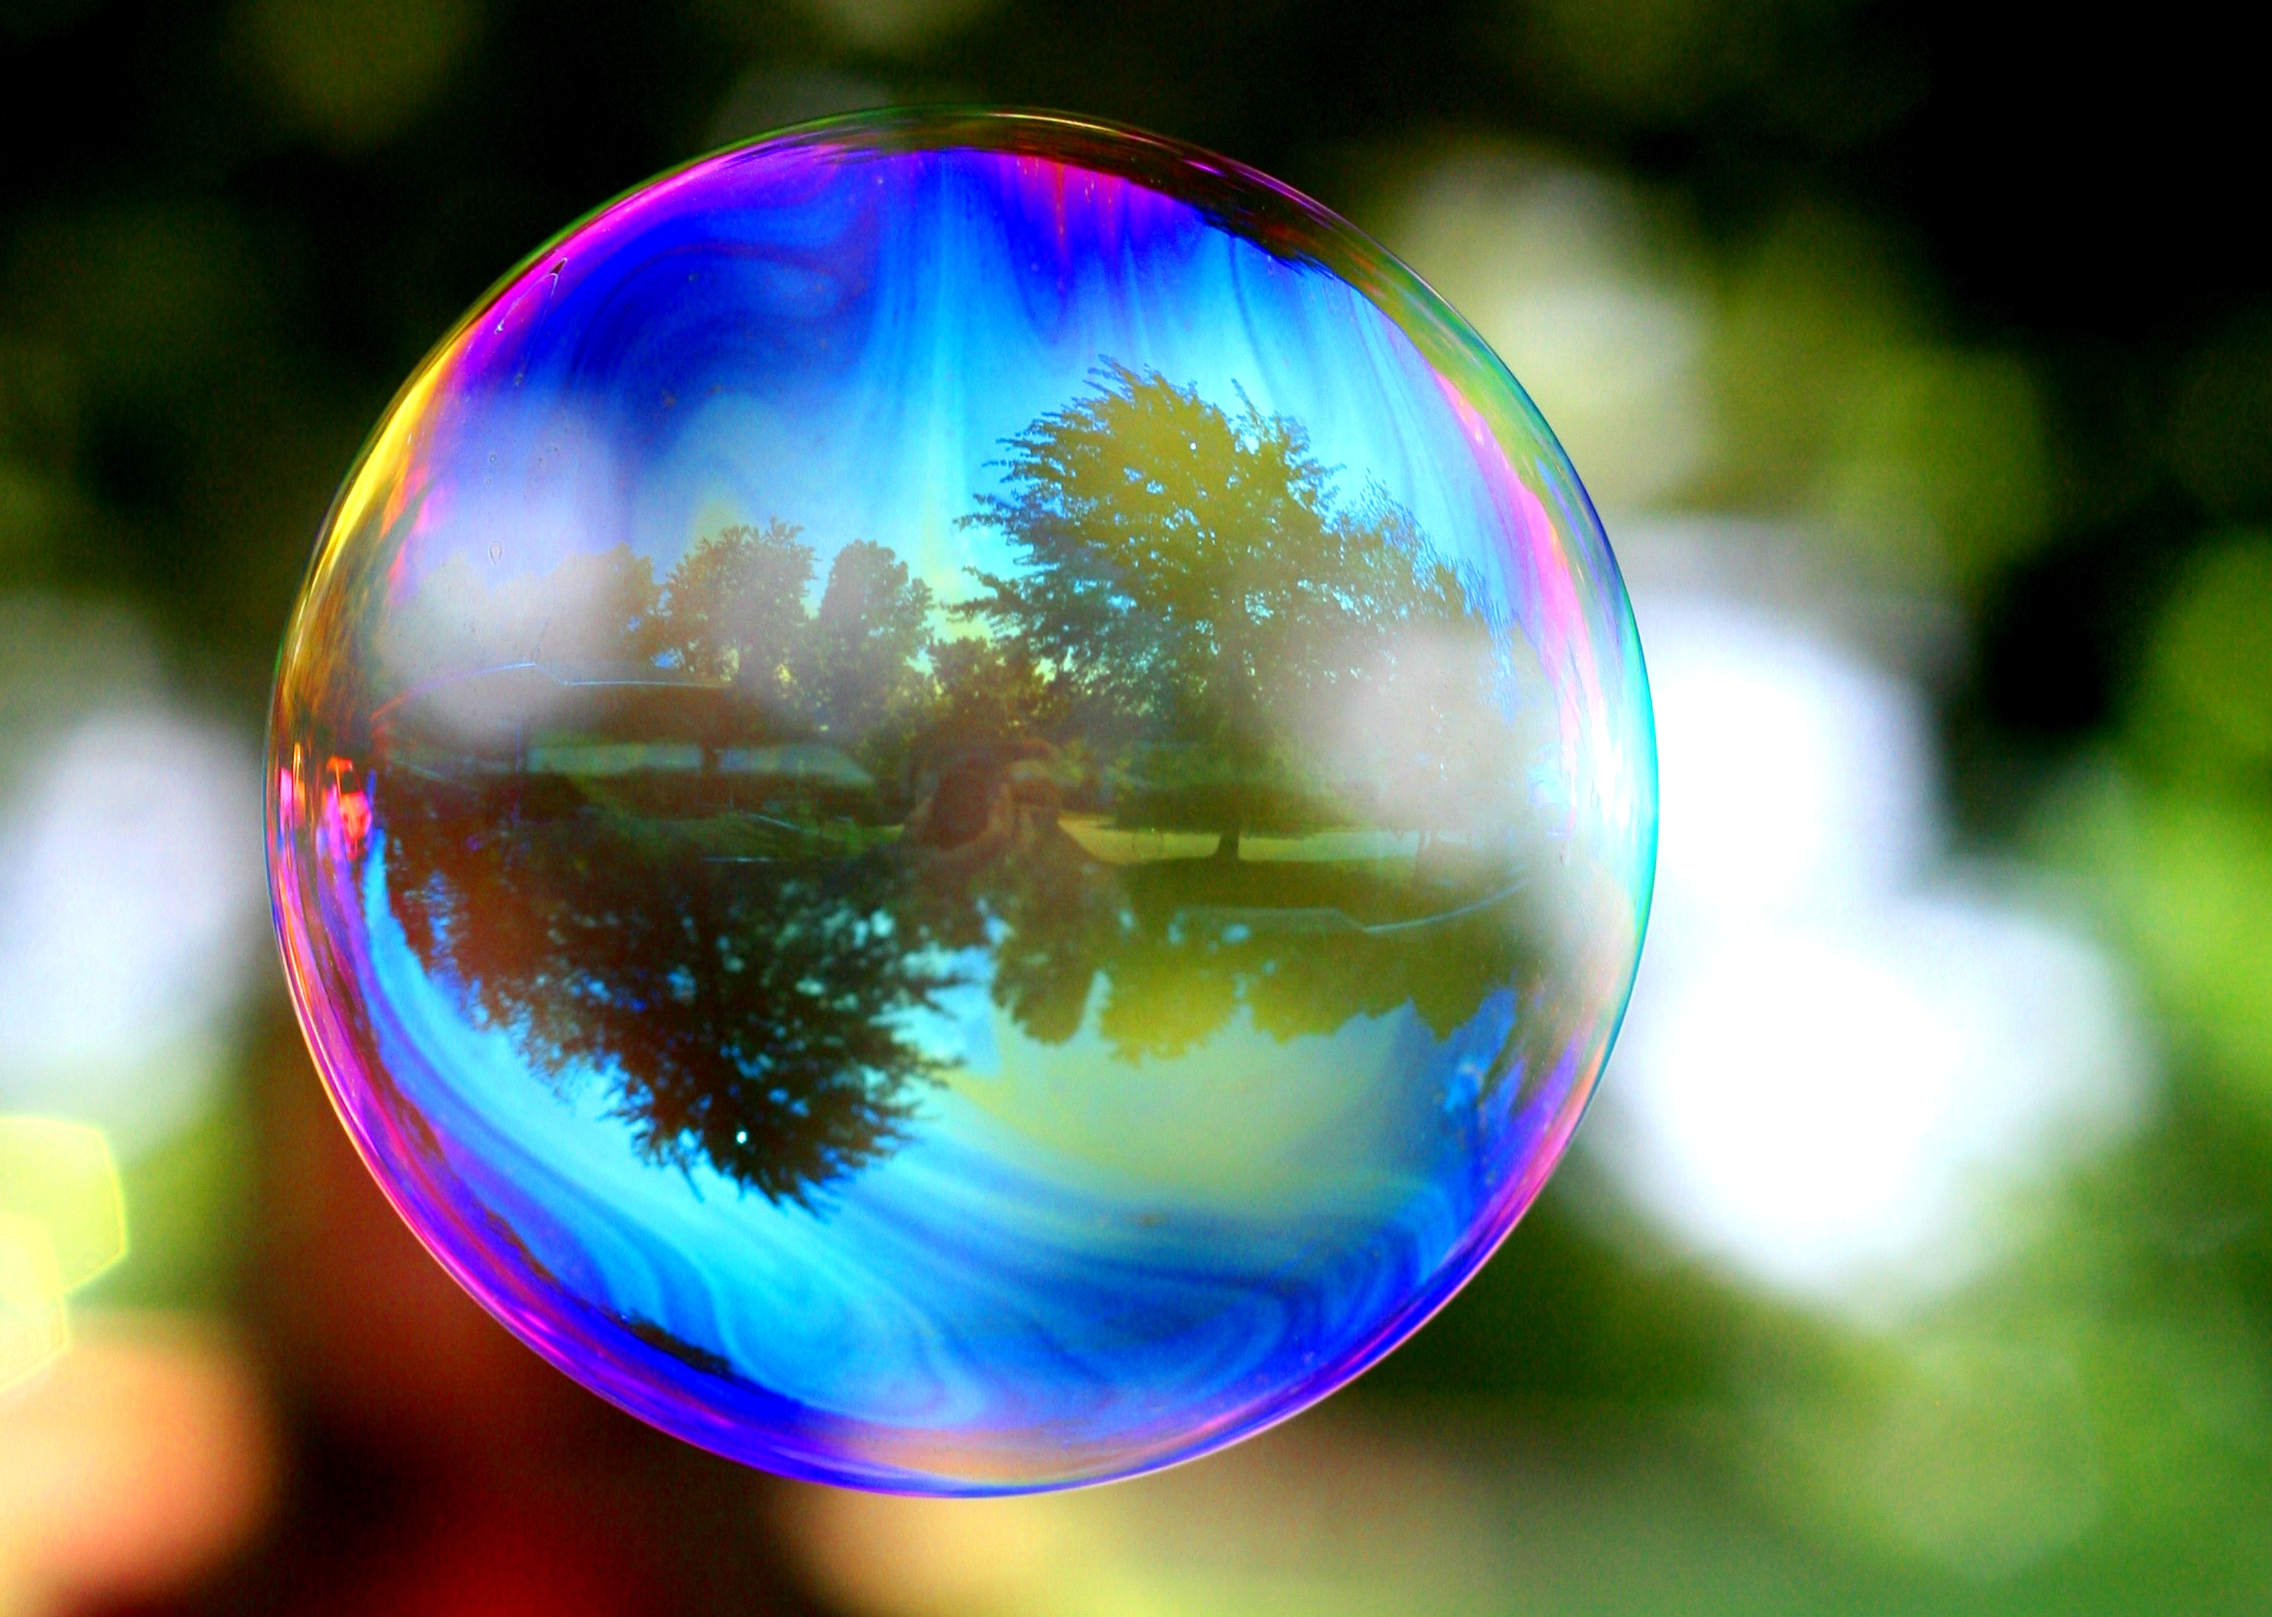 Trees Reflected in a Soap Bubble 476.56 Kb